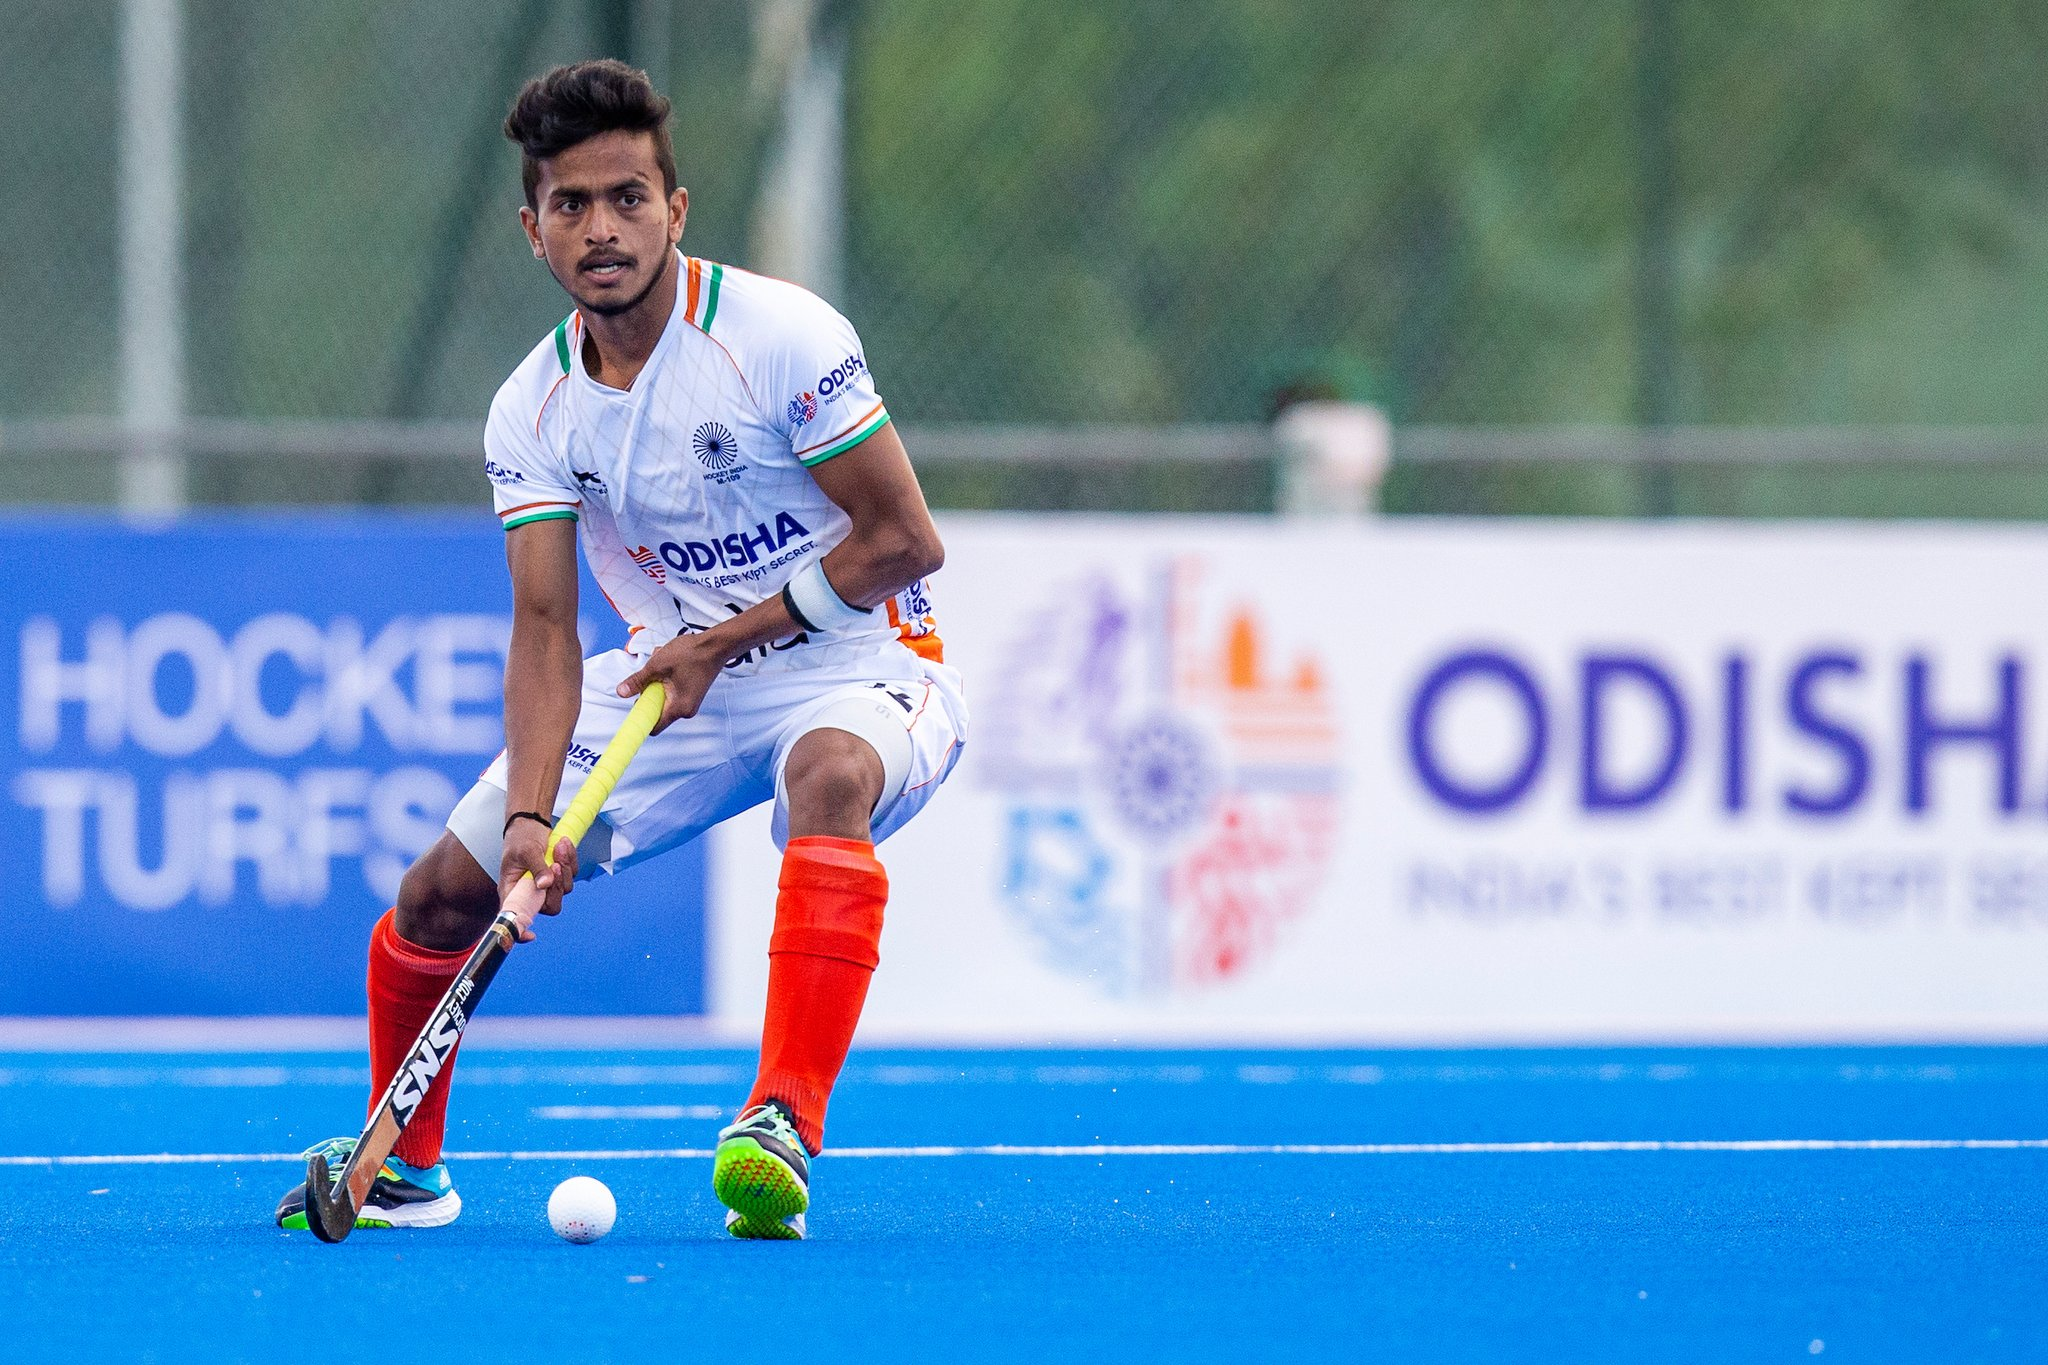 It is 'surreal' for Indian hockey player Vivek Sagar Prasad to be nominated for FIH Rising Star of the Year